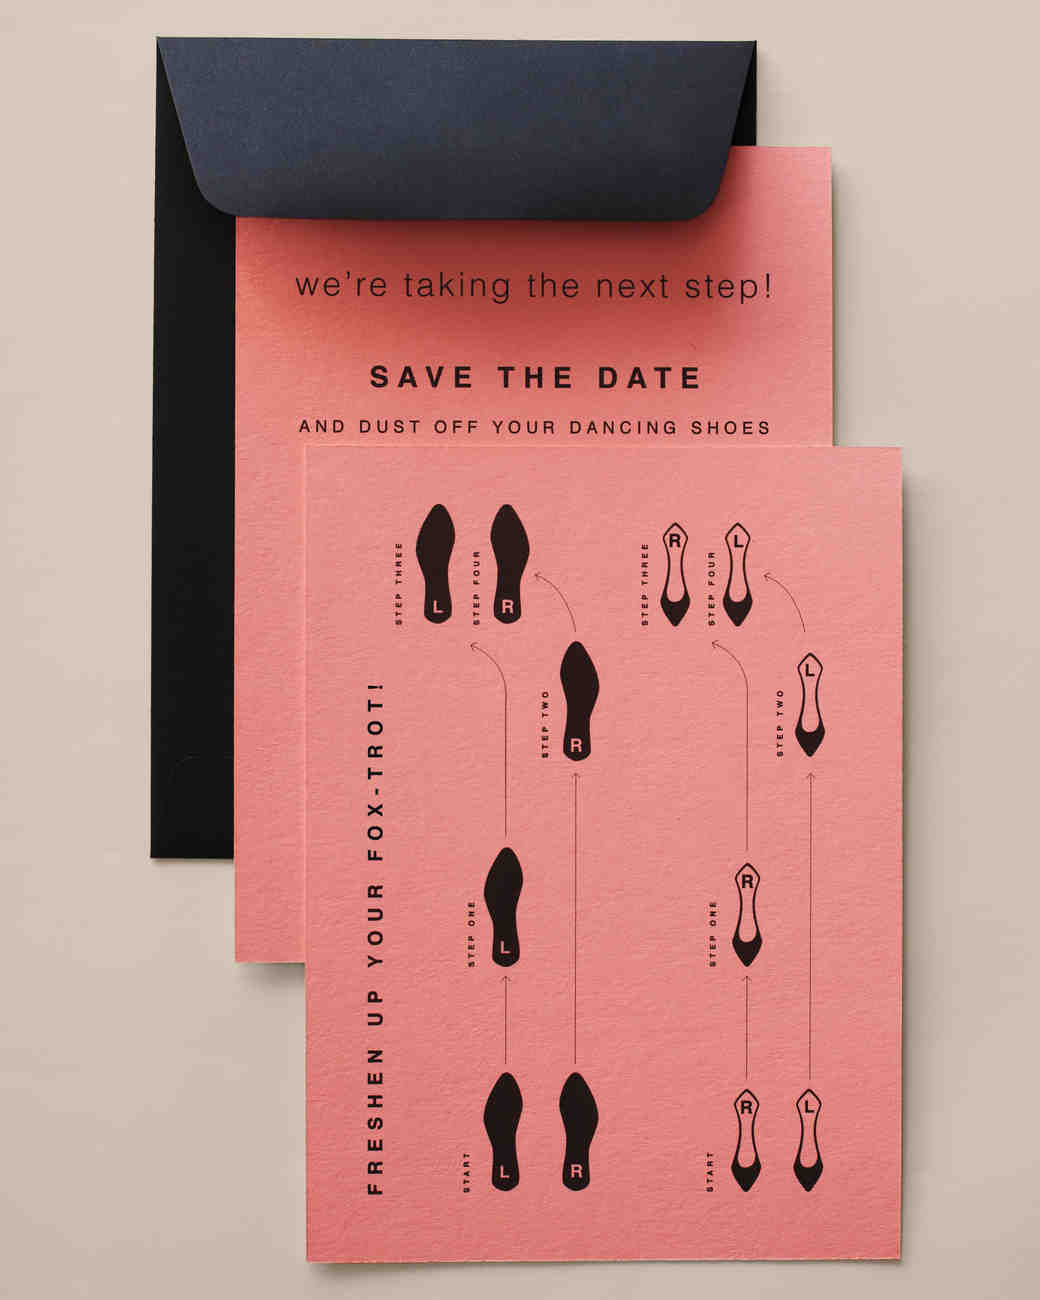 save-the-date-013-mwd109576.jpg